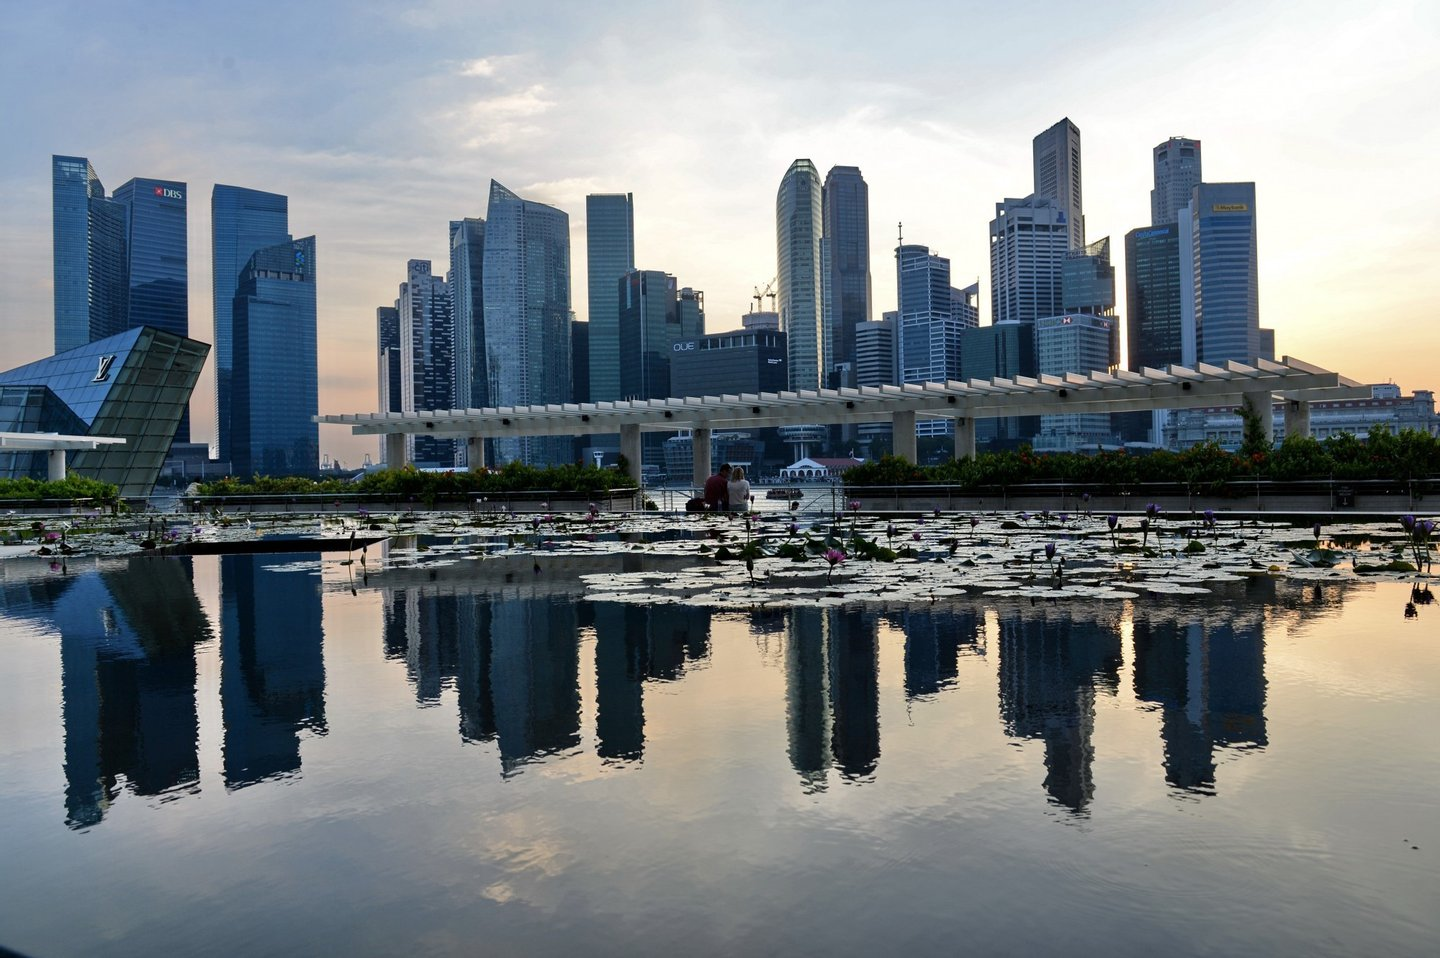 A general view of the financial district skyline is reflected in a pond in Singapore on March 6, 2014 in Singapore. Singapore played down a global survey showing that it is now the world's most expensive city, a finding which has triggered outrage among Singaporeans struggling with rising costs. AFP PHOTO / ROSLAN RAHMAN        (Photo credit should read ROSLAN RAHMAN/AFP/Getty Images)